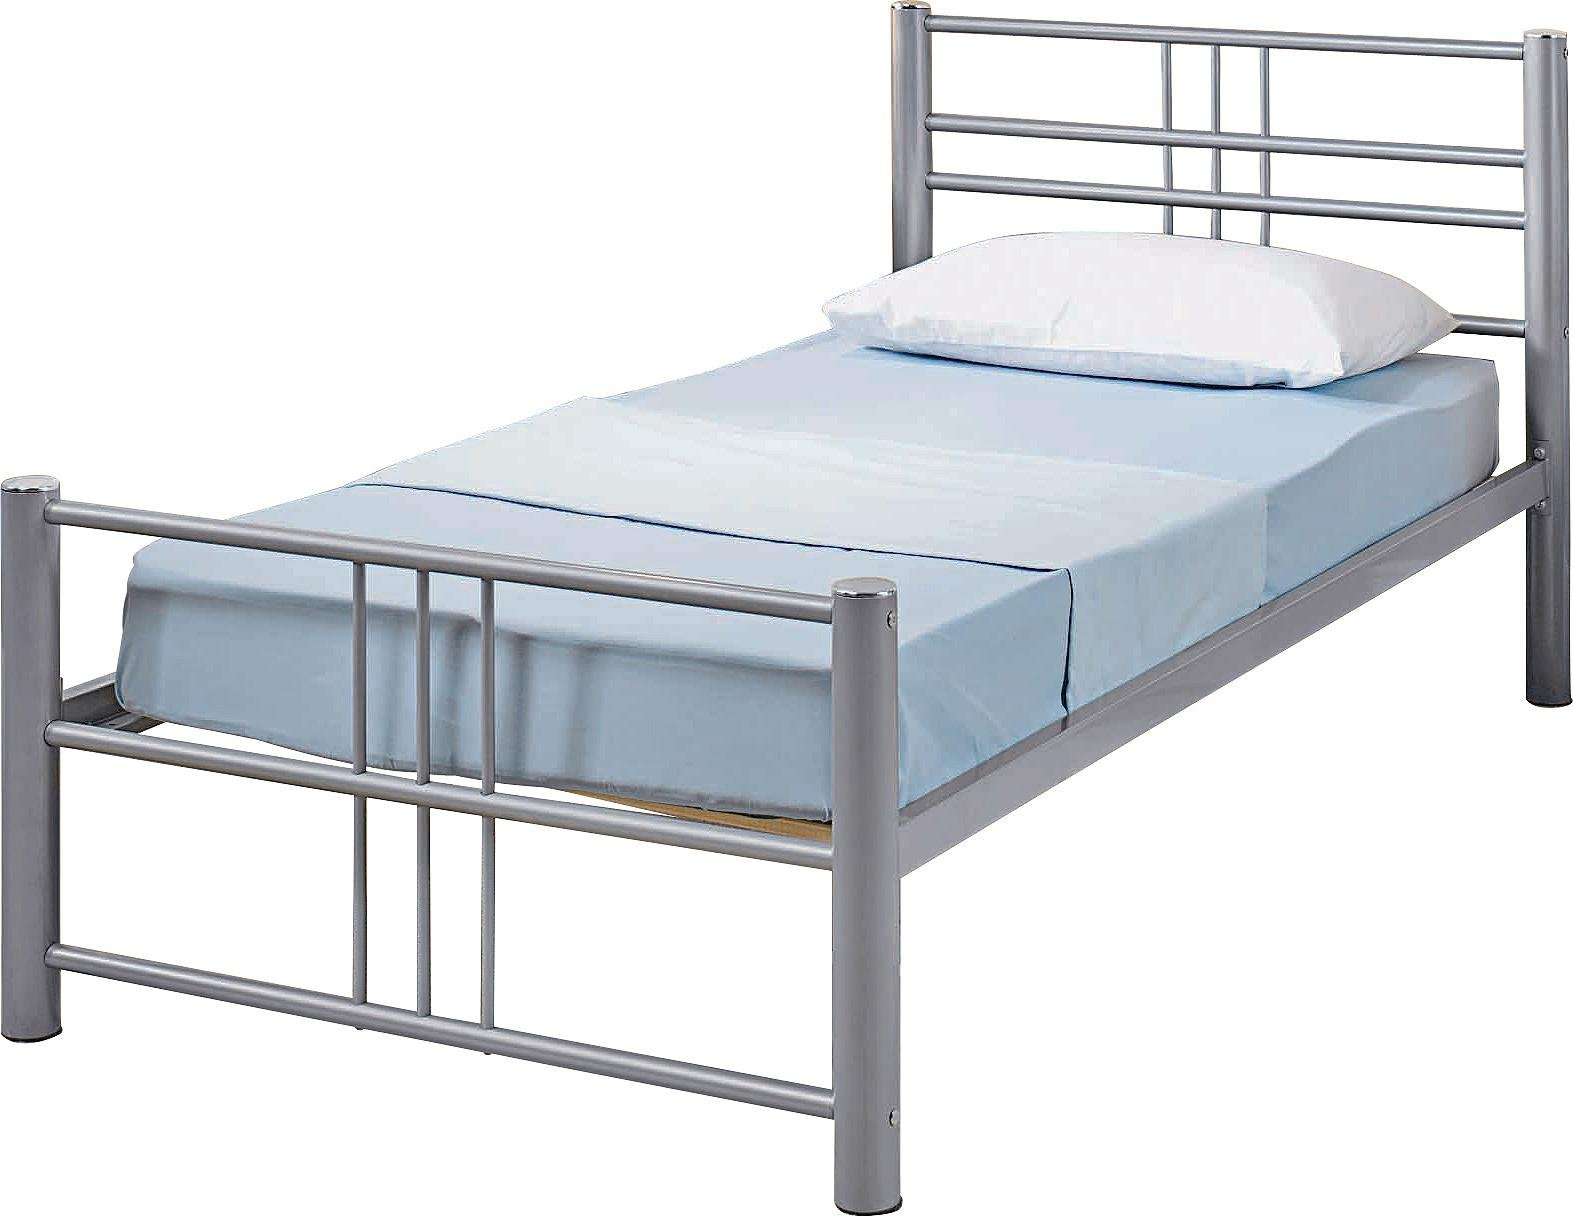 Best of Argos Home Atlas Single Metal Bed Frame Silver Simple - Fresh chrome bed frame Style